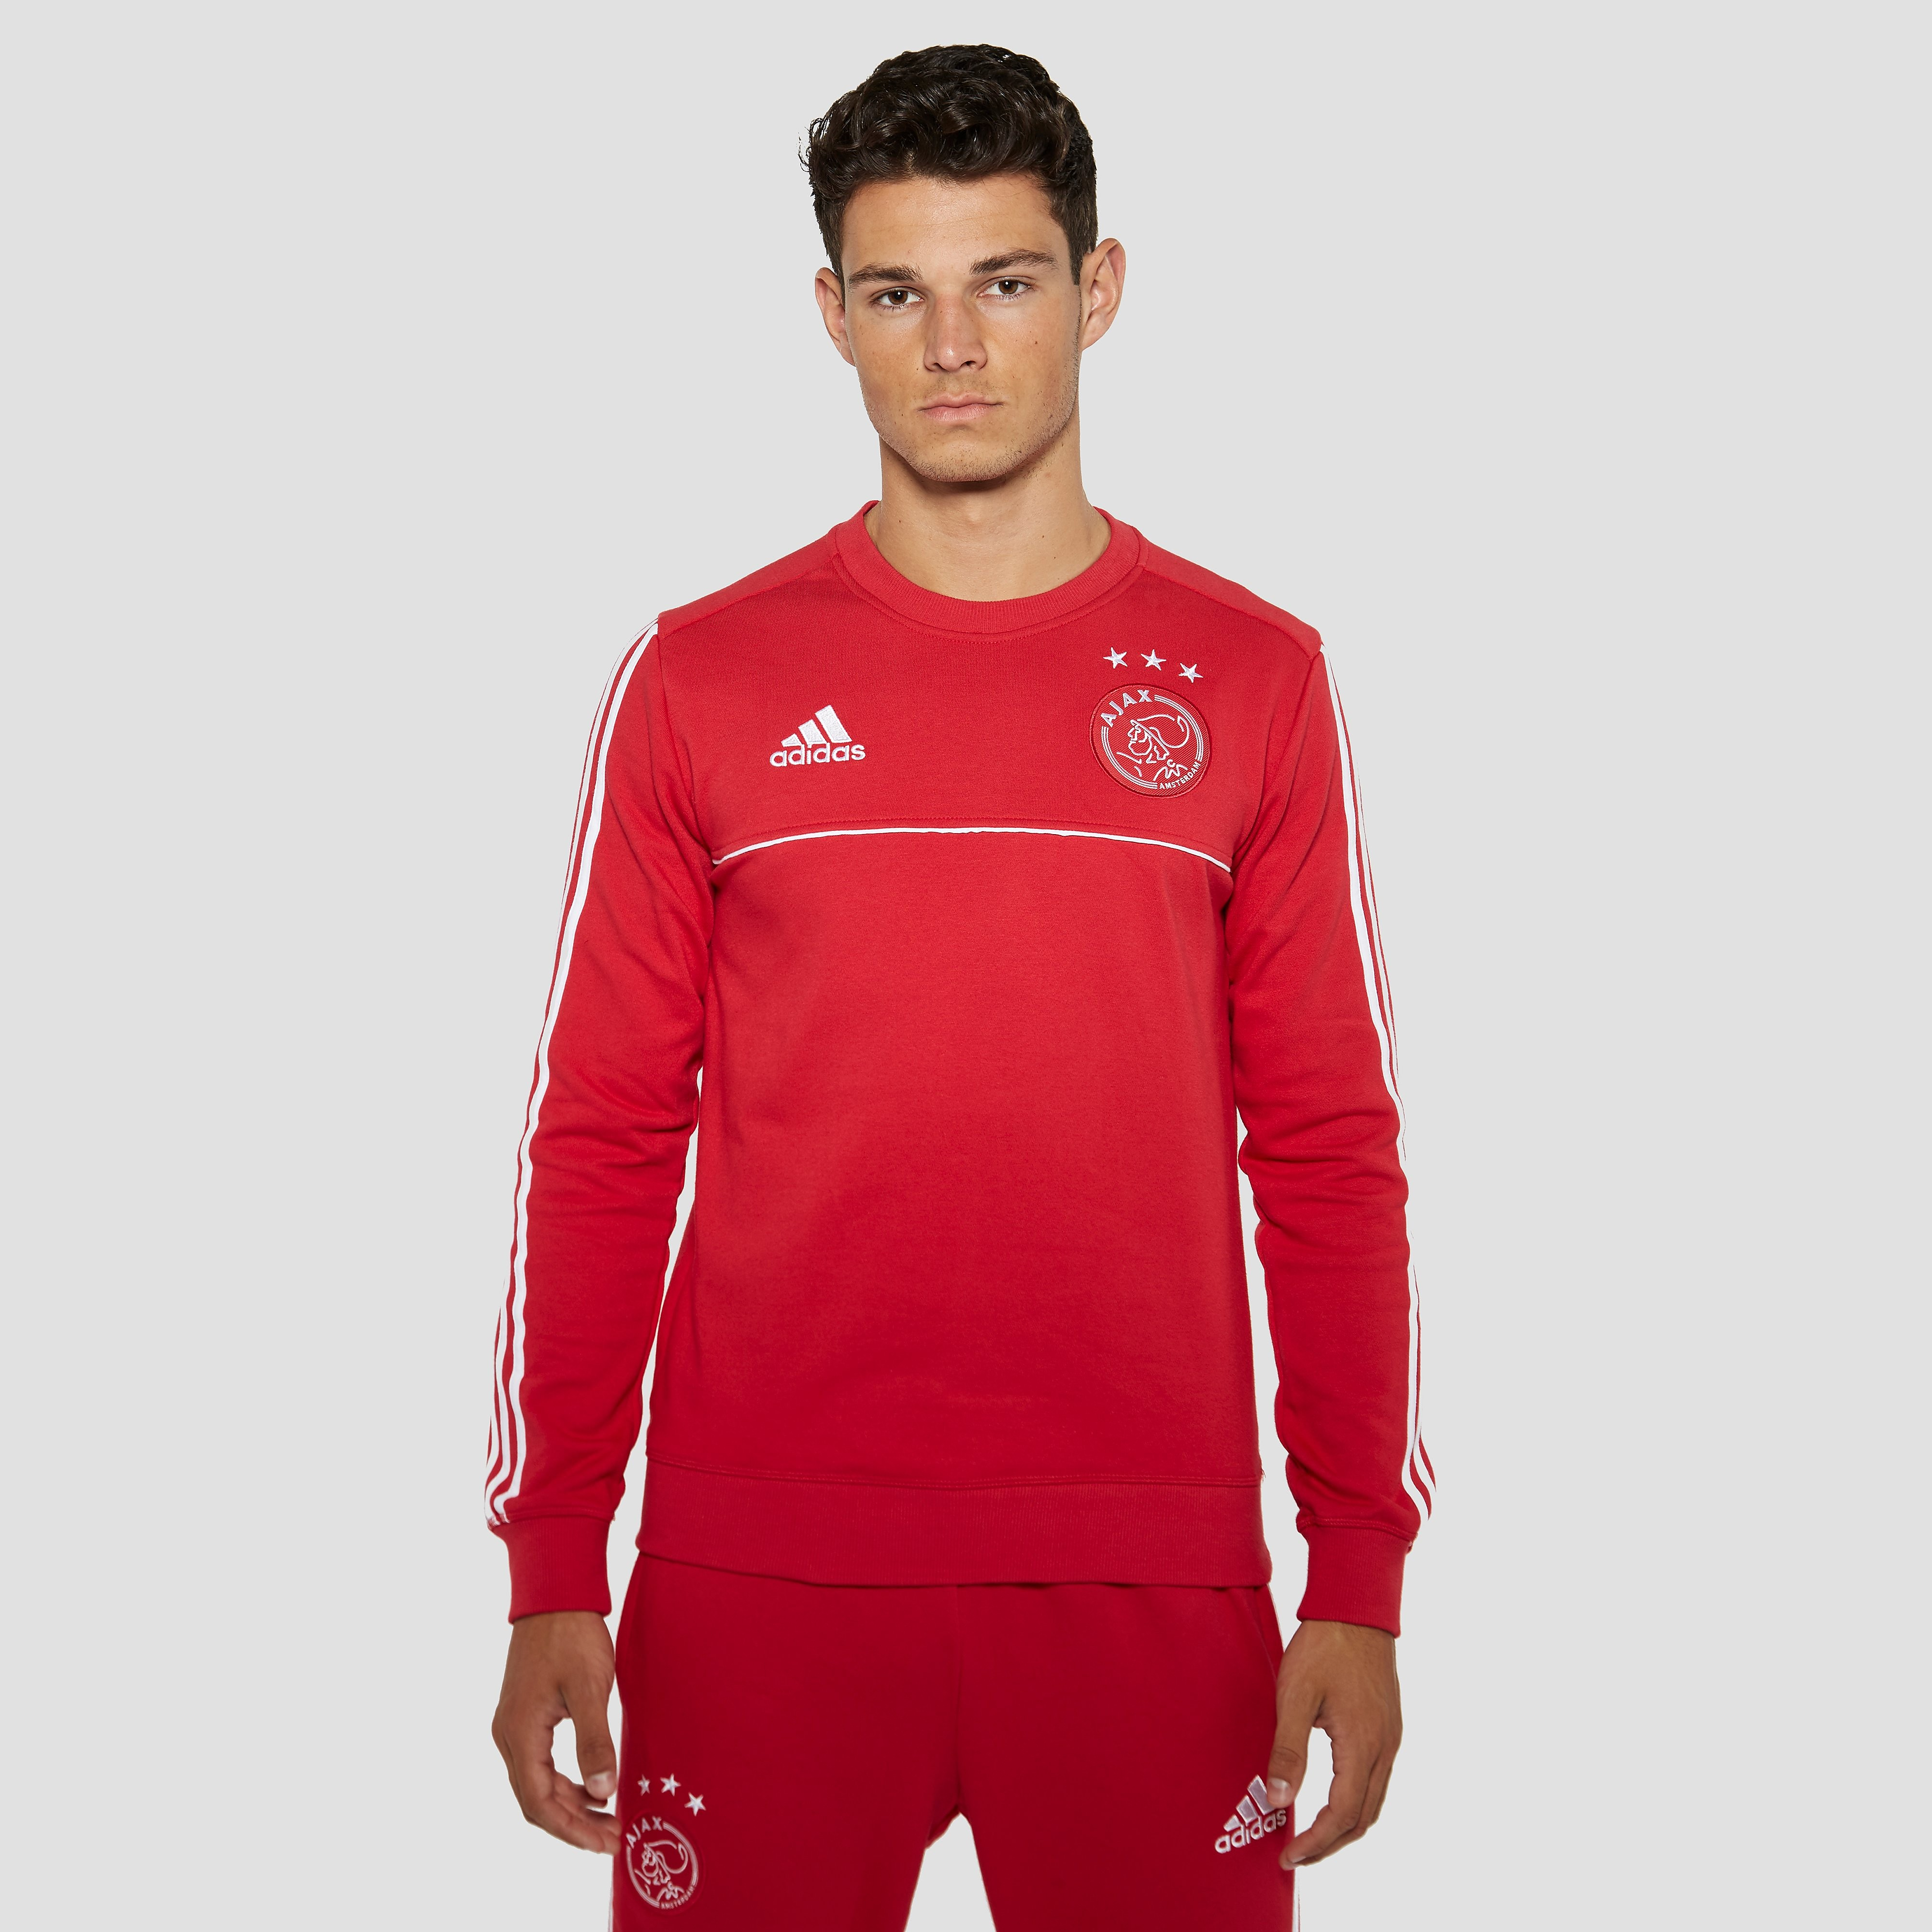 ADIDAS AJAX THUIS SWEATER 17/18 ROOD/WIT HEREN